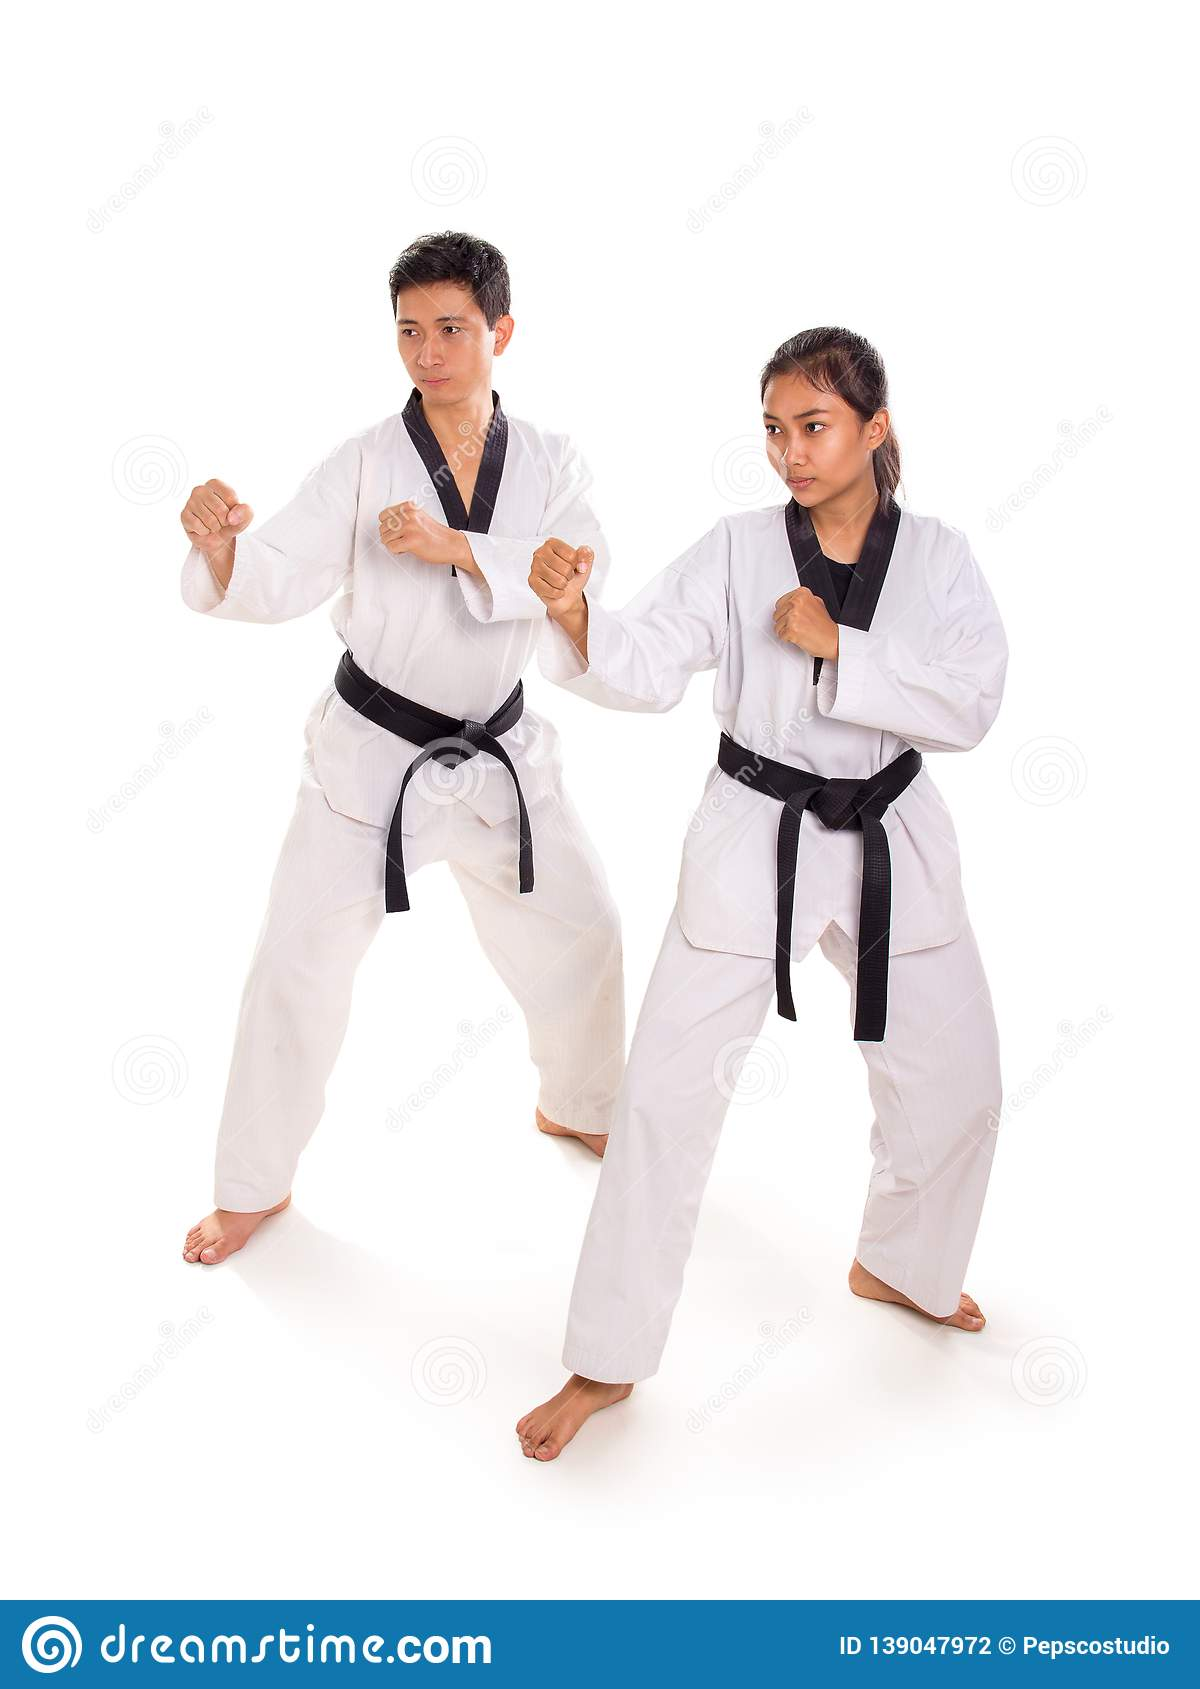 Male And Female Fighters In Action Together Stock Photo Image Of Arts Kimono 139047972